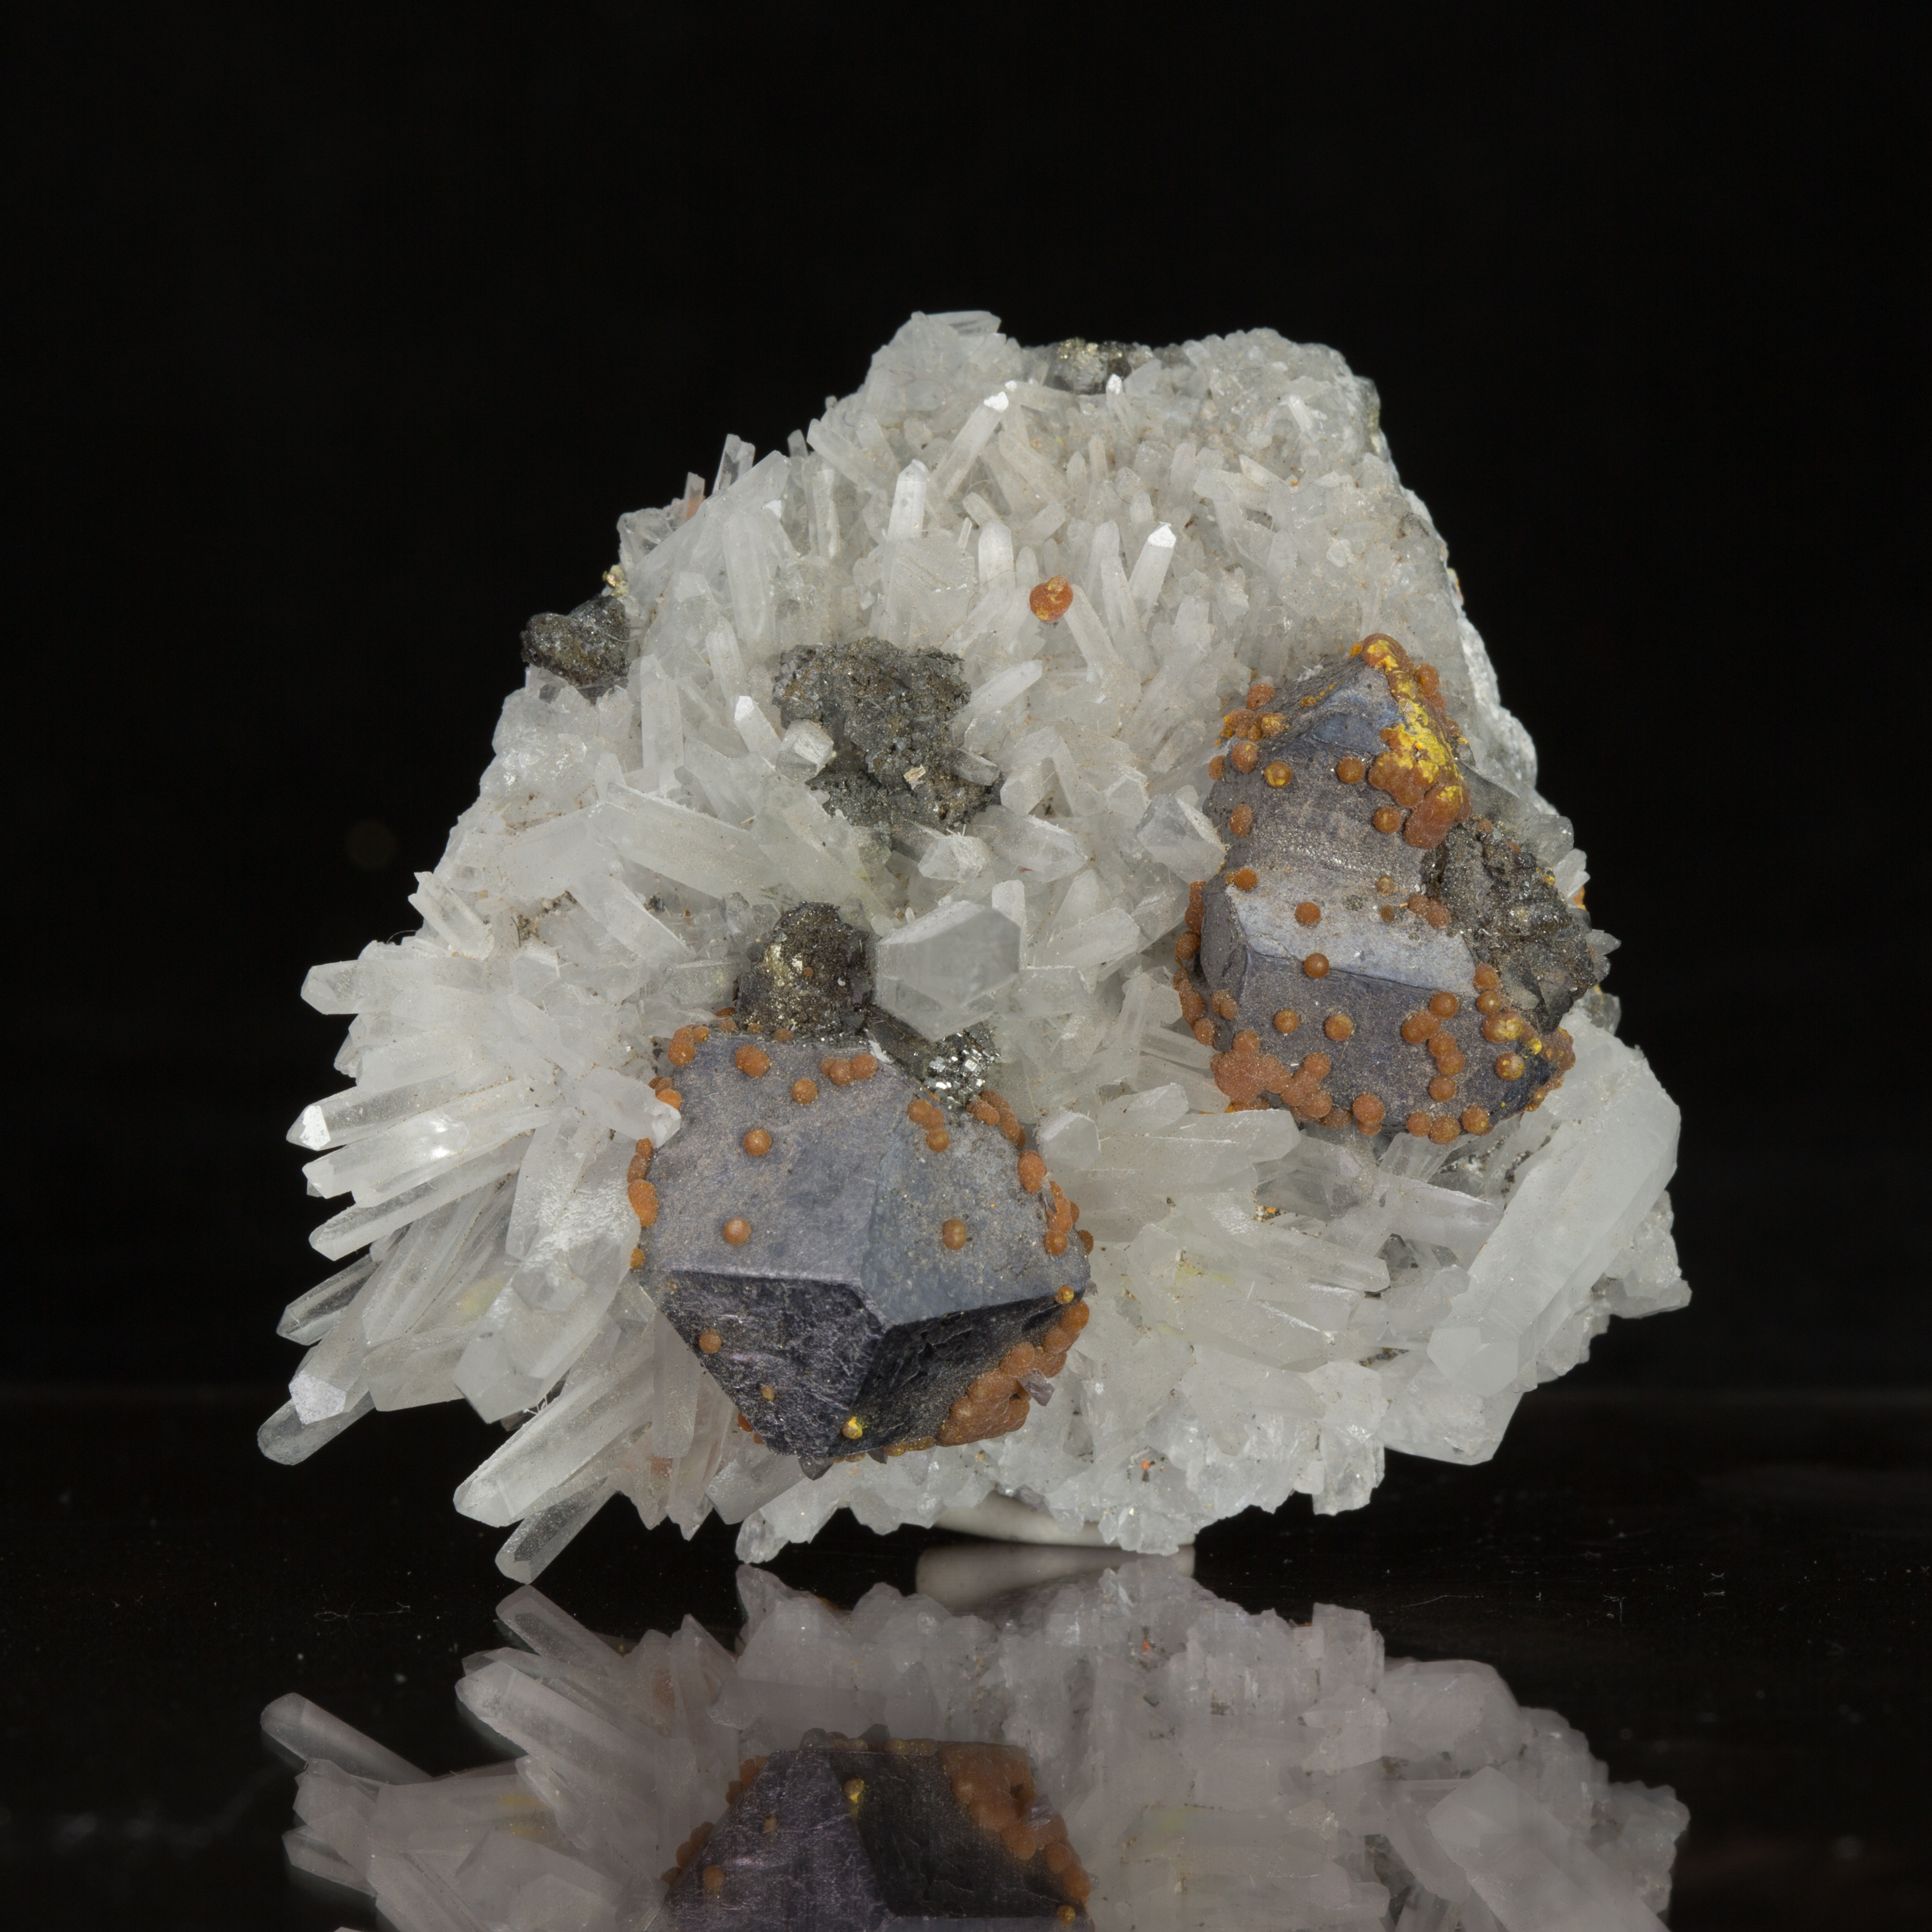 Quartz Galena Orpiment Pyrite combination